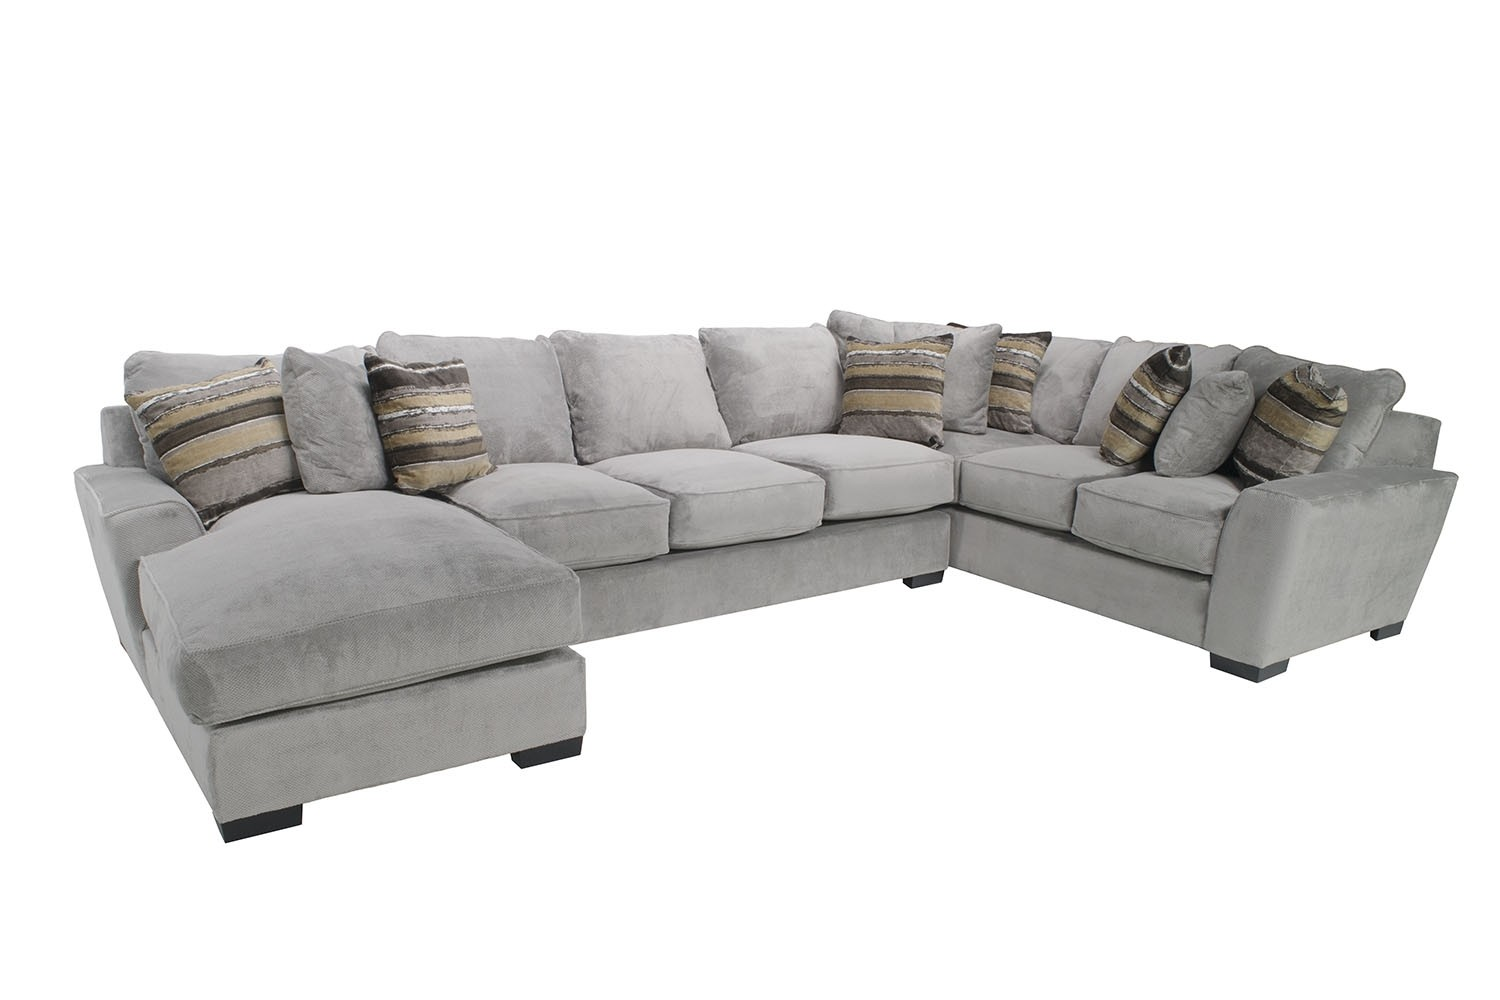 Sofa Express Locations Sectional Sofas Mor Furniture For Less